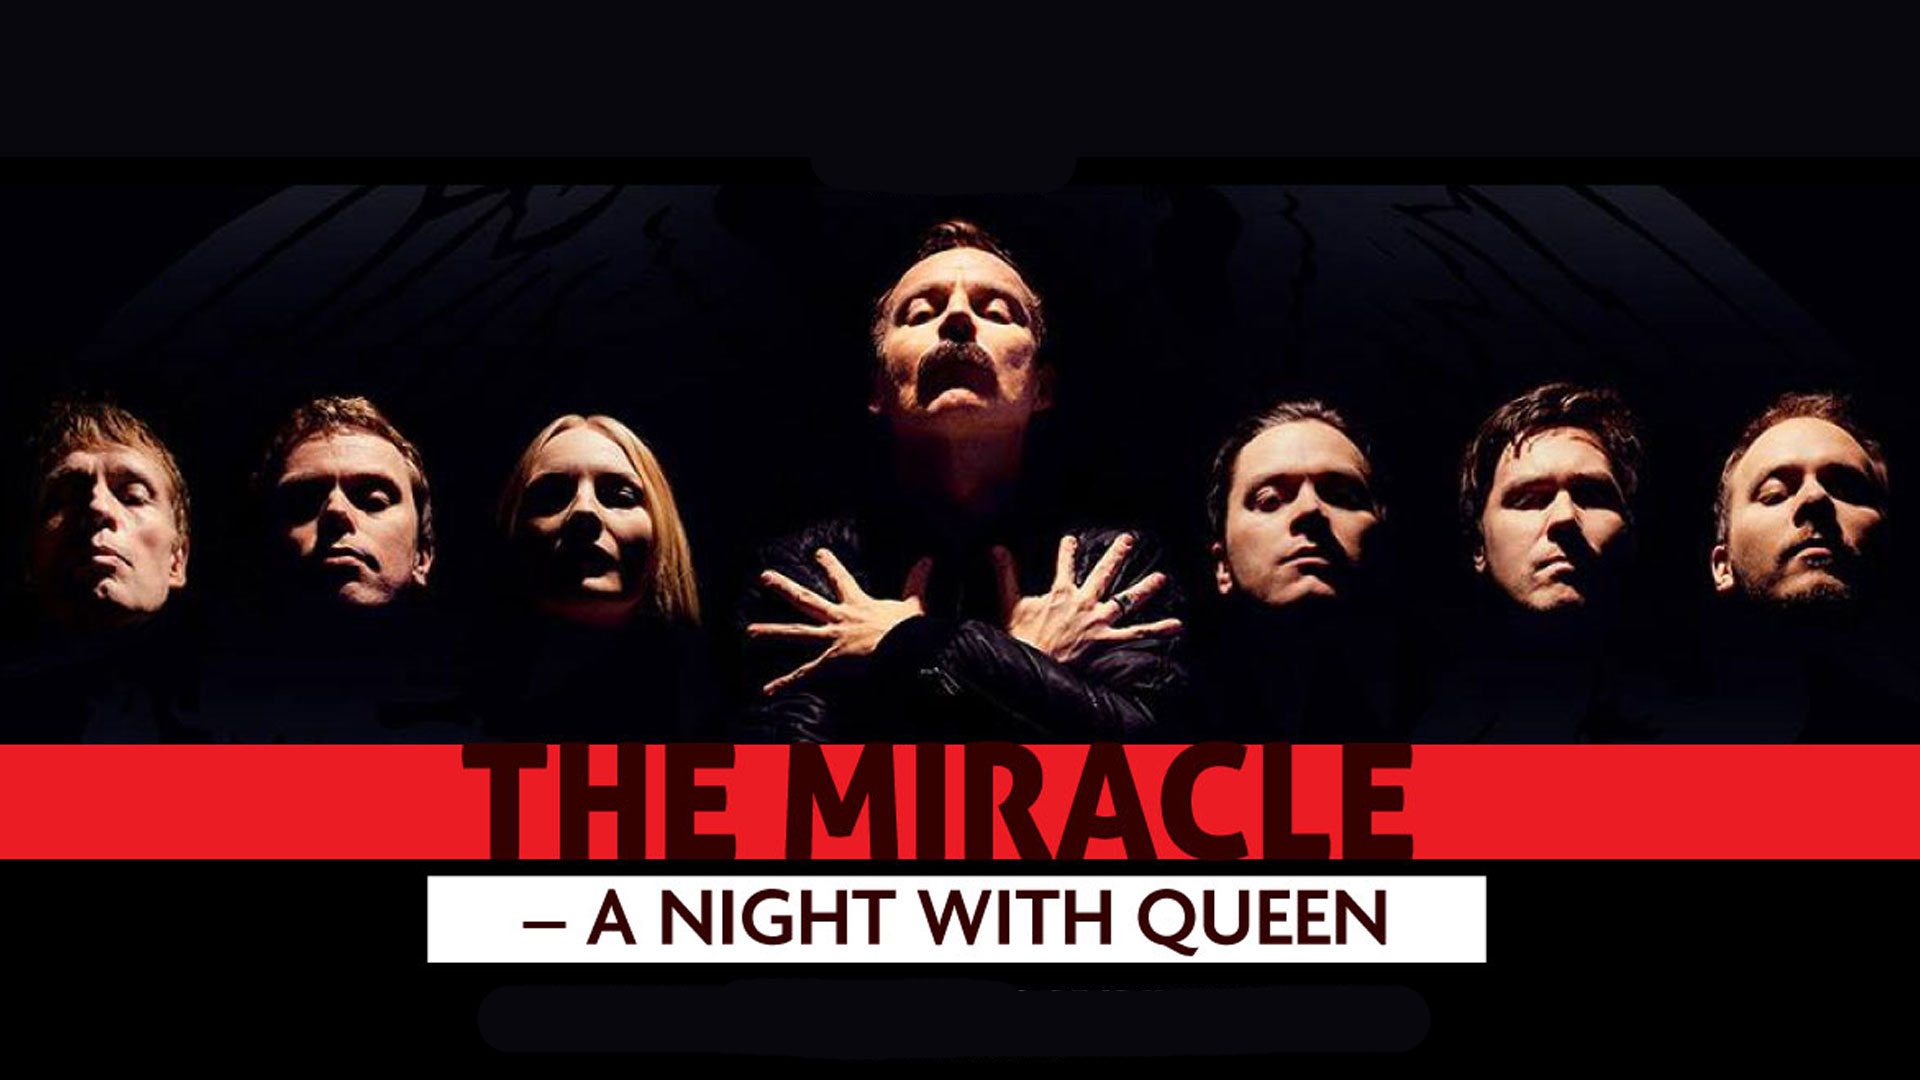 The Miracle - A Night With Queen pe 3.12.2021 klo 19.00